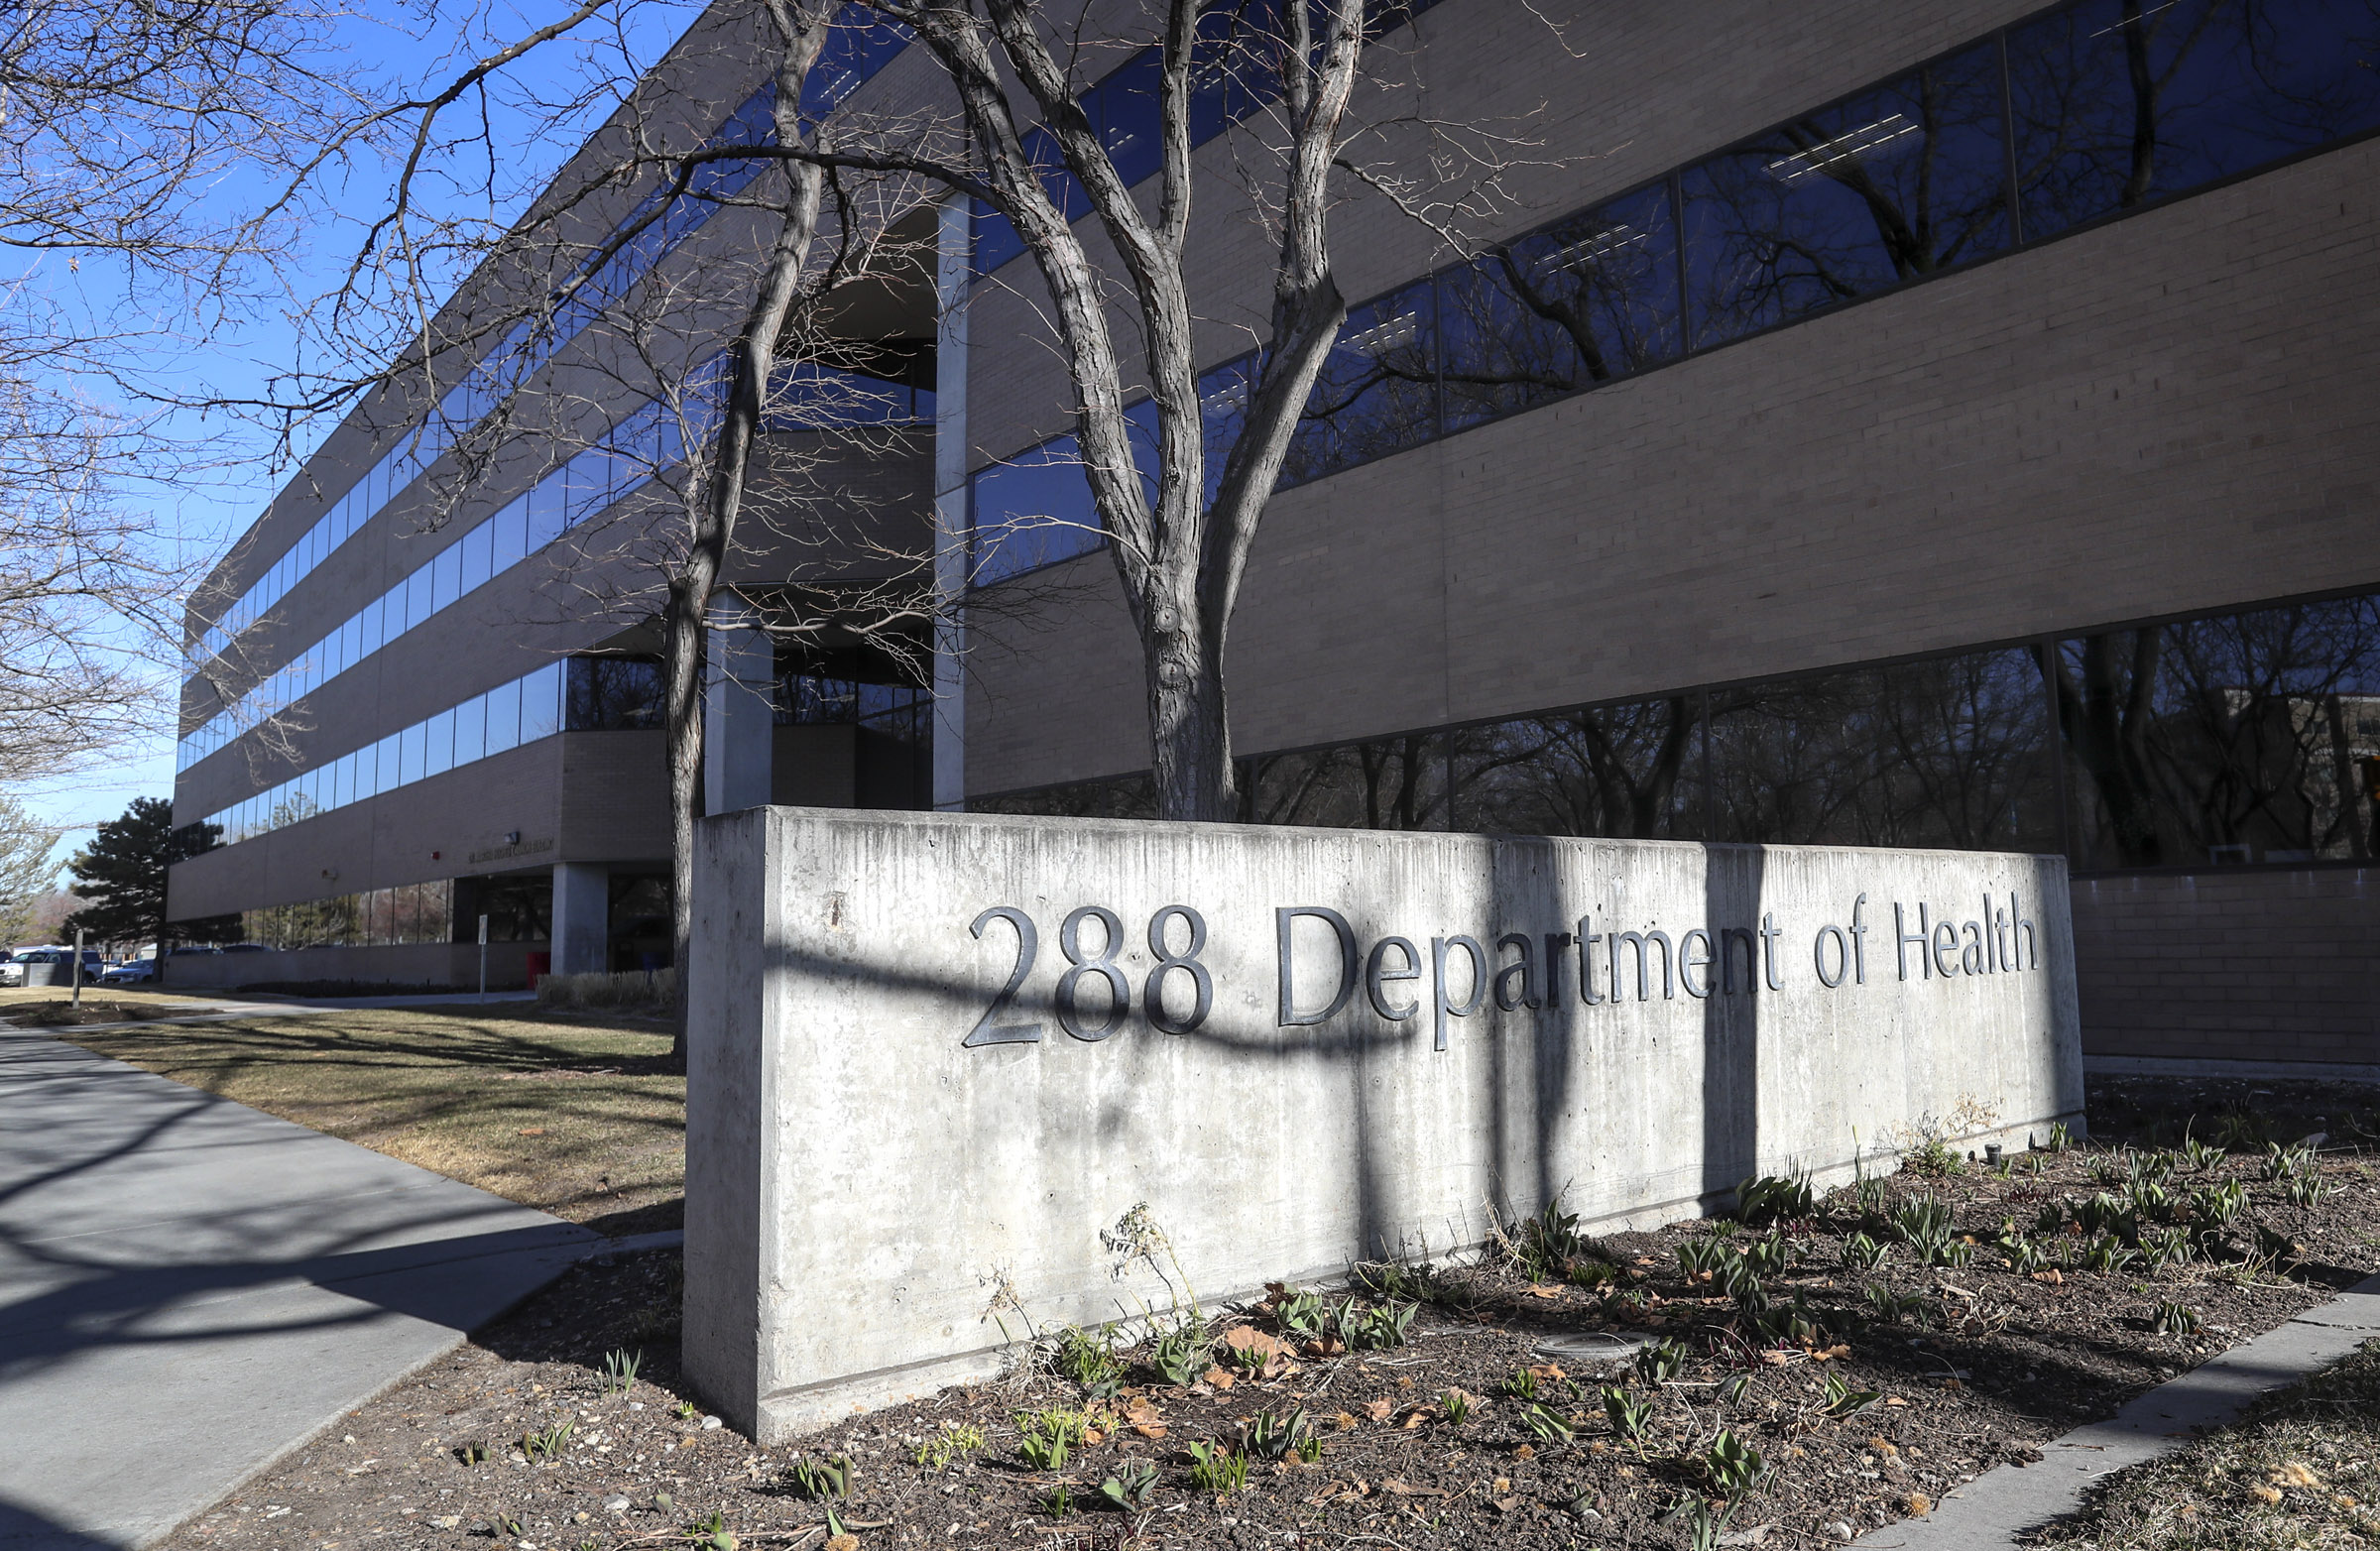 The Utah Department of Health building in Salt Lake City is pictured on Thursday, Feb. 27, 2020.